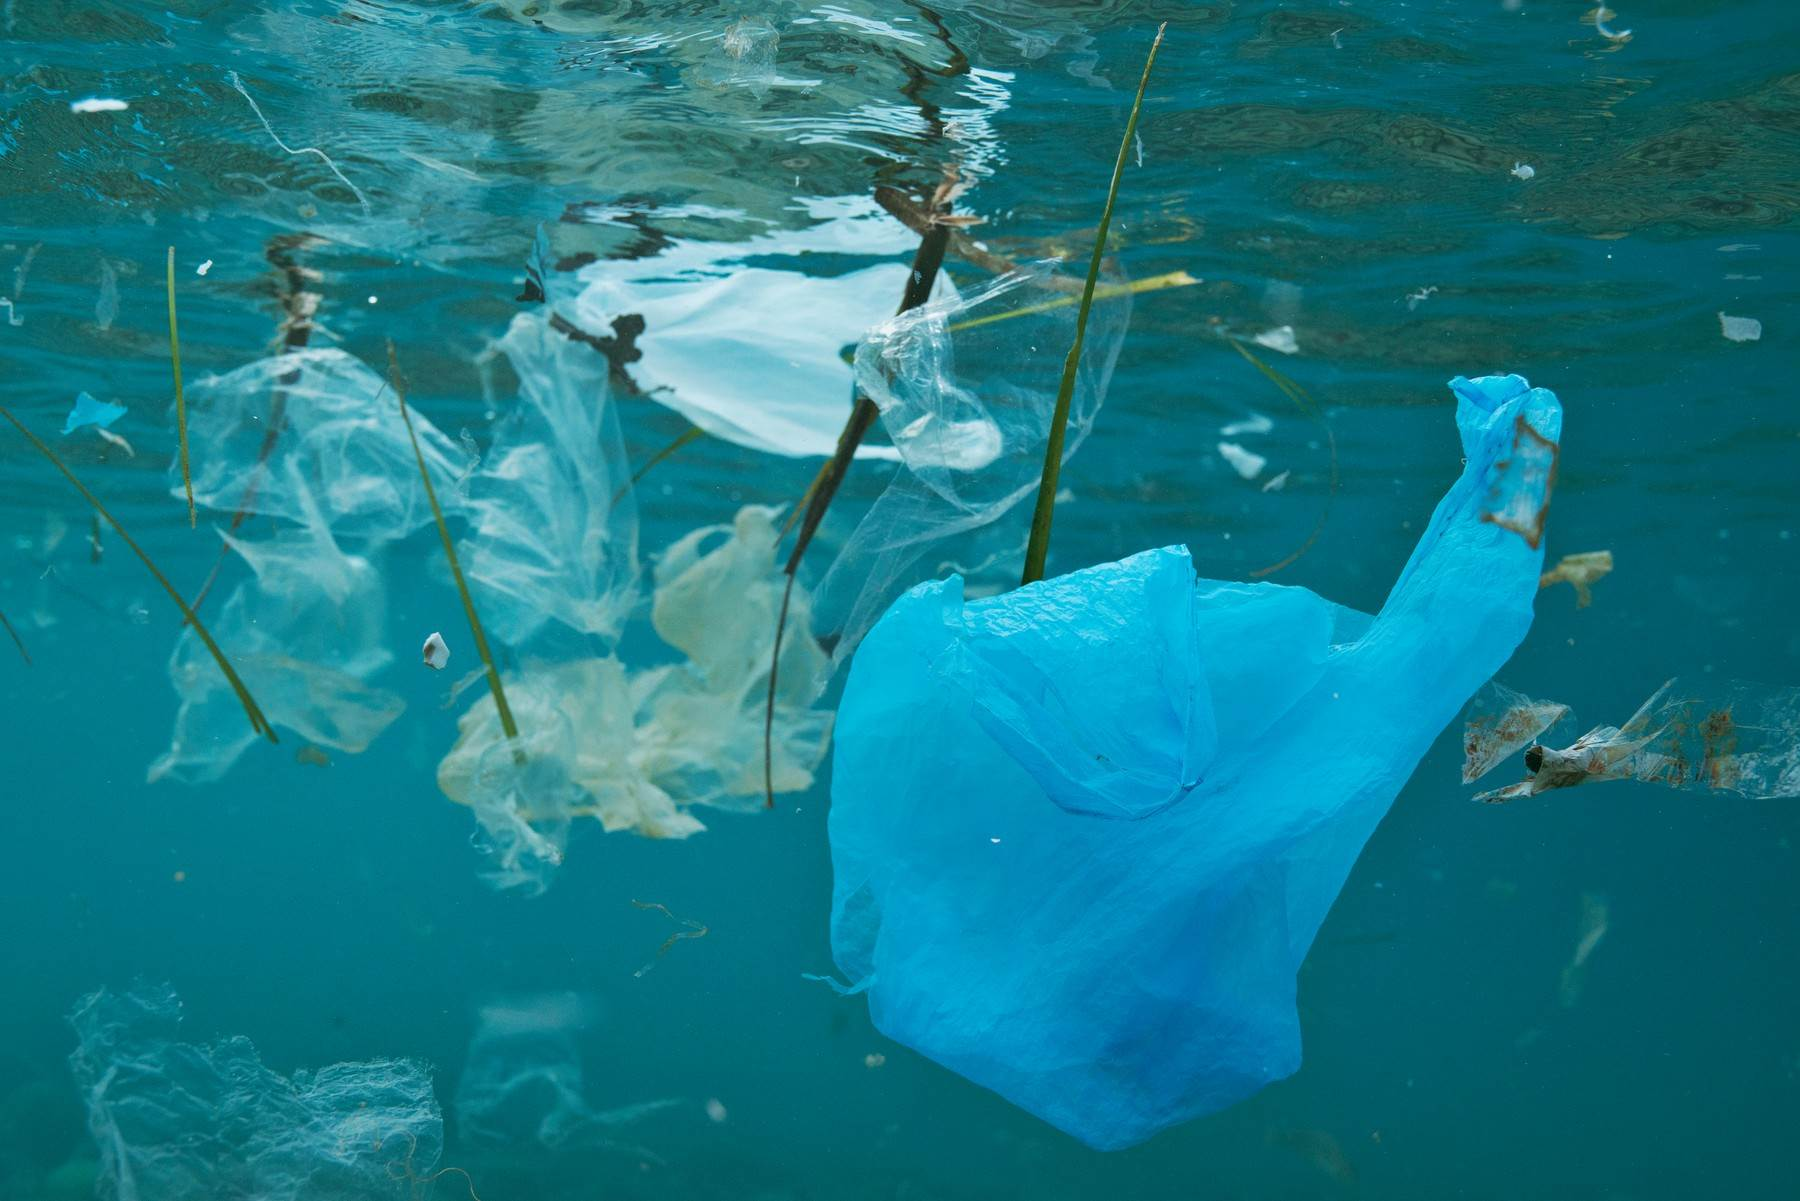 BIOLOGICAL;ECOLOGICAL;ECOSYSTEM;ENVIRONMENT;ENVIRONMENTAL IMPACT;EUROPEAN;NATURE;NO-ONE;NOBODY;PLASTIC;PLASTICS;POLLUTED;POLLUTION;SPANISH;UNDER WATER;PLASTIC BAG;CARRIER BAG;WASTE;JUNK;RUBBISHEUROPE;SEA;UNDERWATER;OCEAN;MEDITERRANEAN;SPAIN;SURFACE FLOATINGBIOLOGY;MARINE BIOLOGY;ECOLOGY;category_code_environment